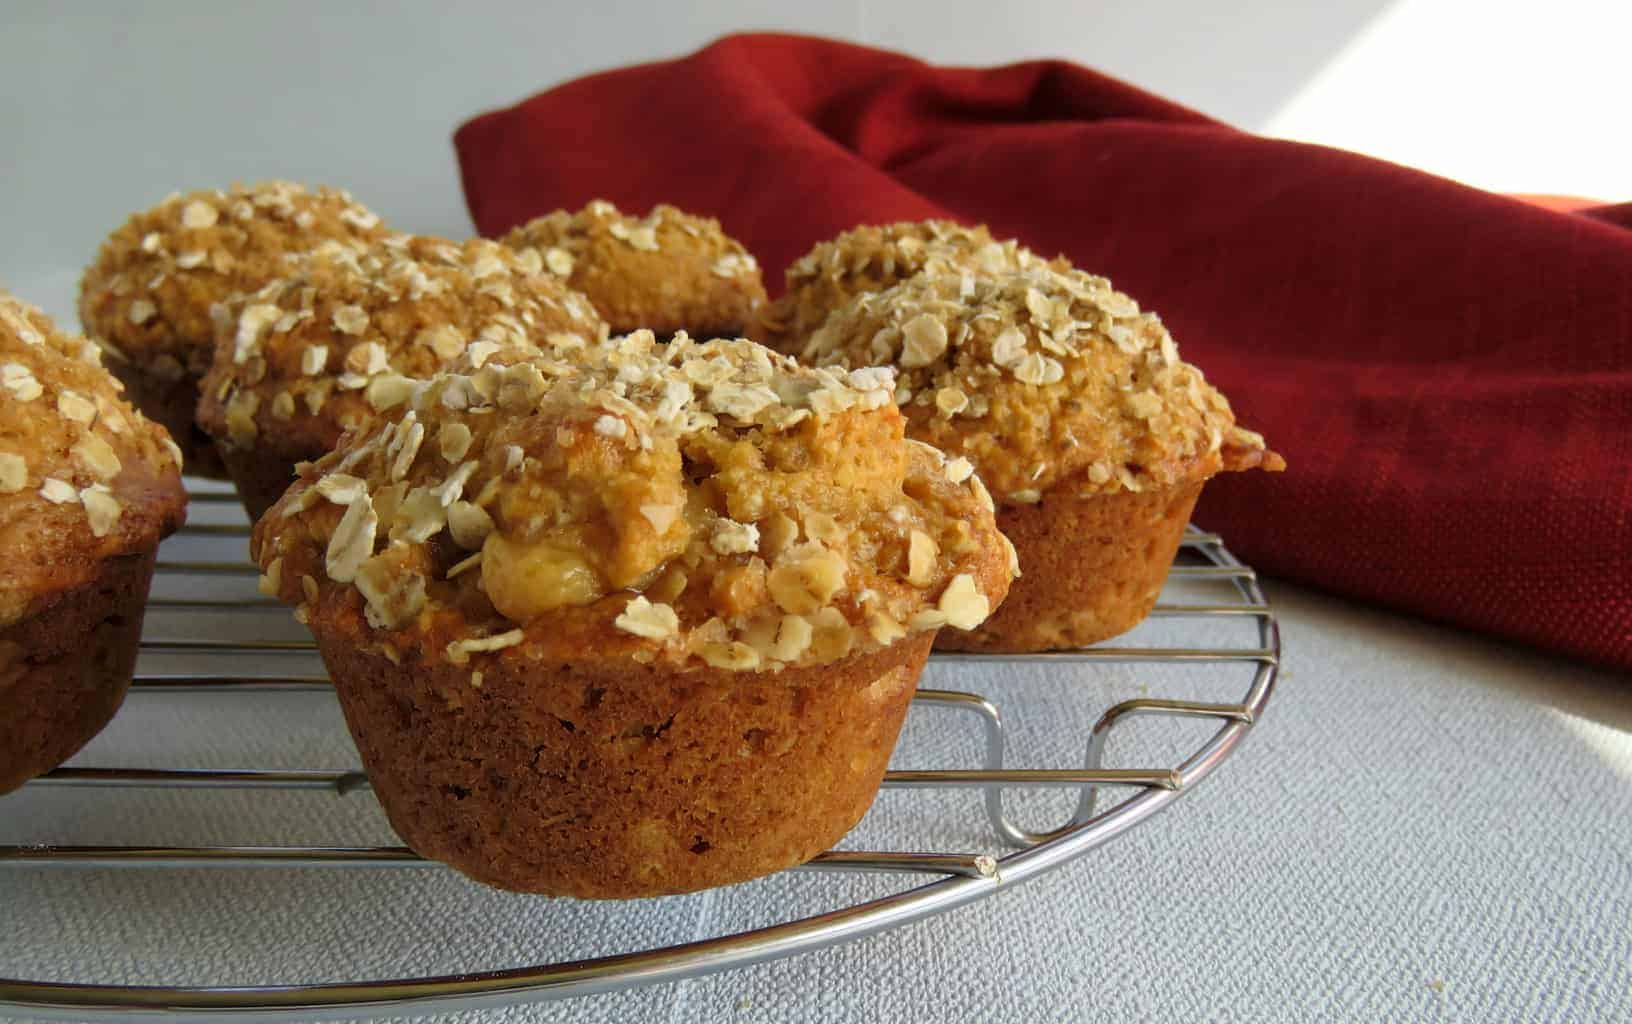 Just A Mum's ANZAC Muffins with a Caramel Filling